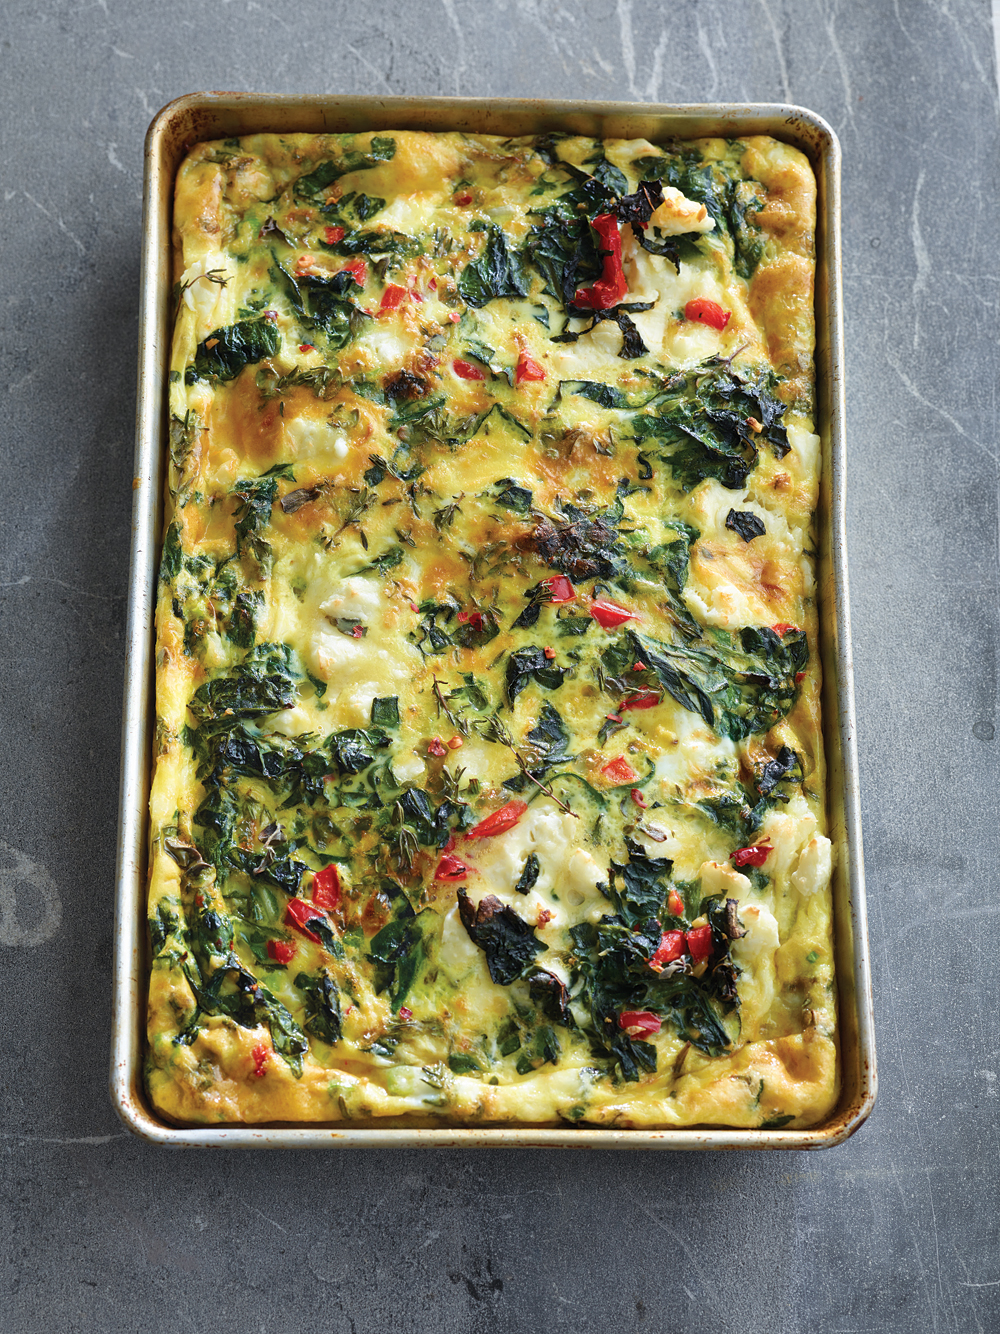 Triple Greens Frittata. Photo: Maren Caruso